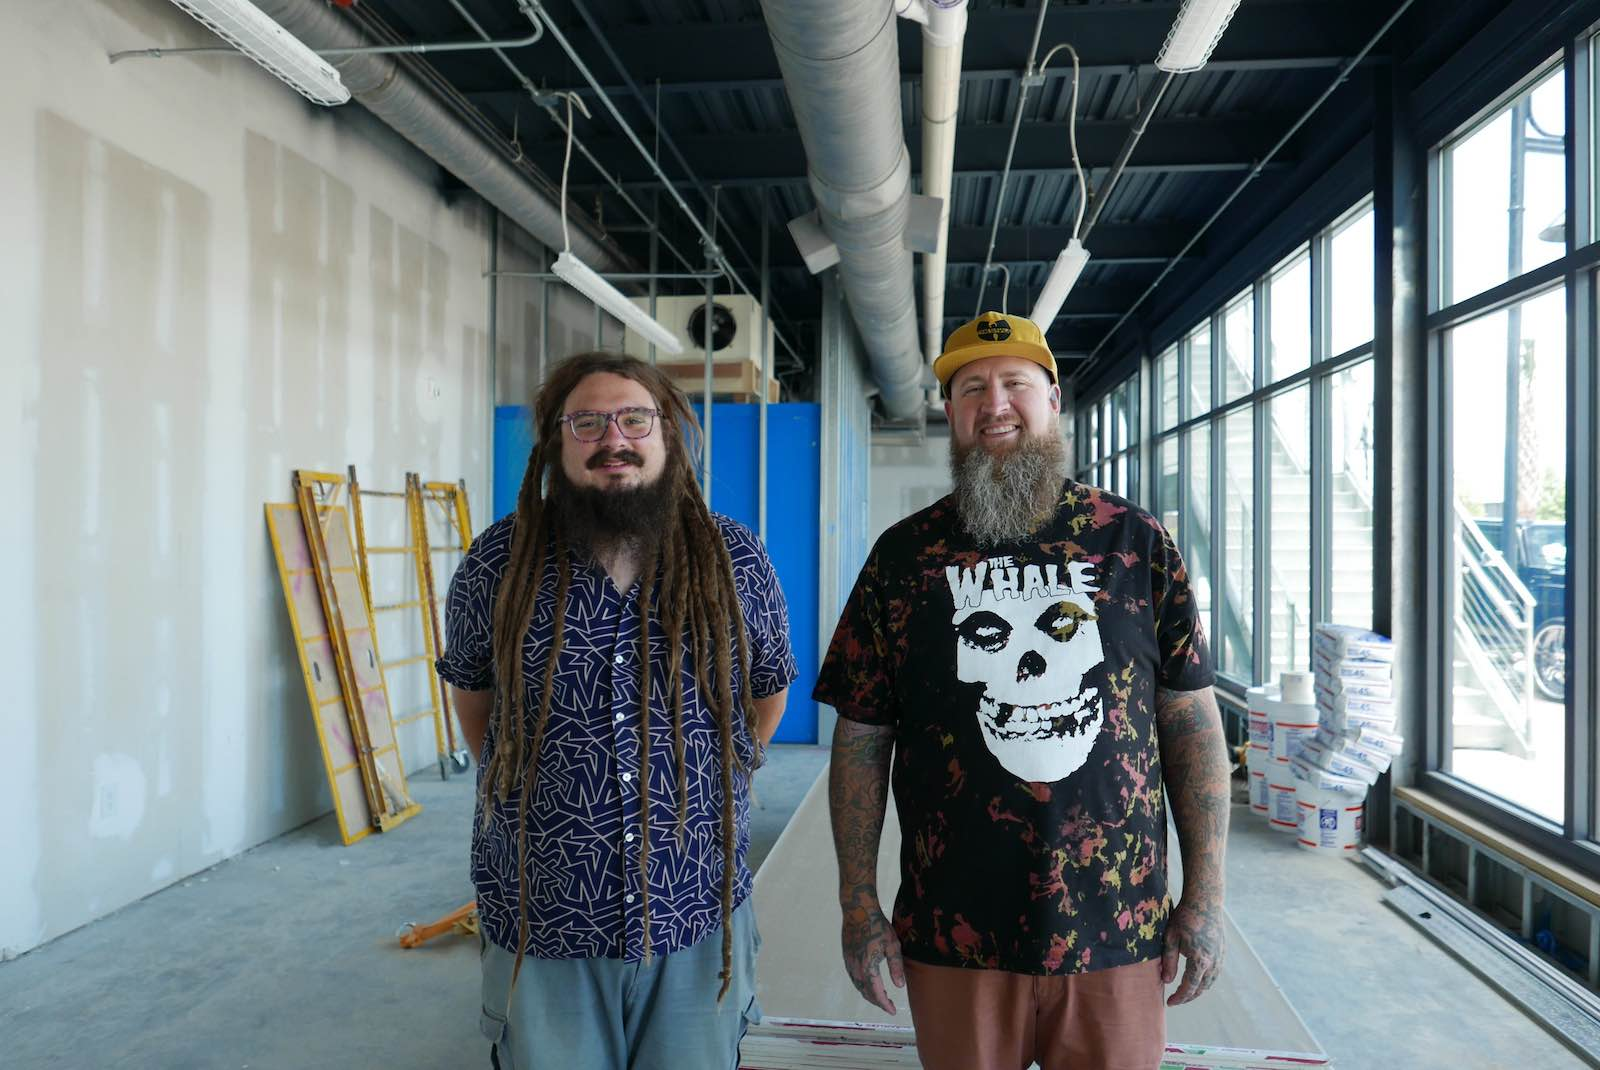 Co-owners Jesse Van Note and Andrew Ross are bringing to the Lowcountry an outpost of the Asheville-based beer collective the Whale